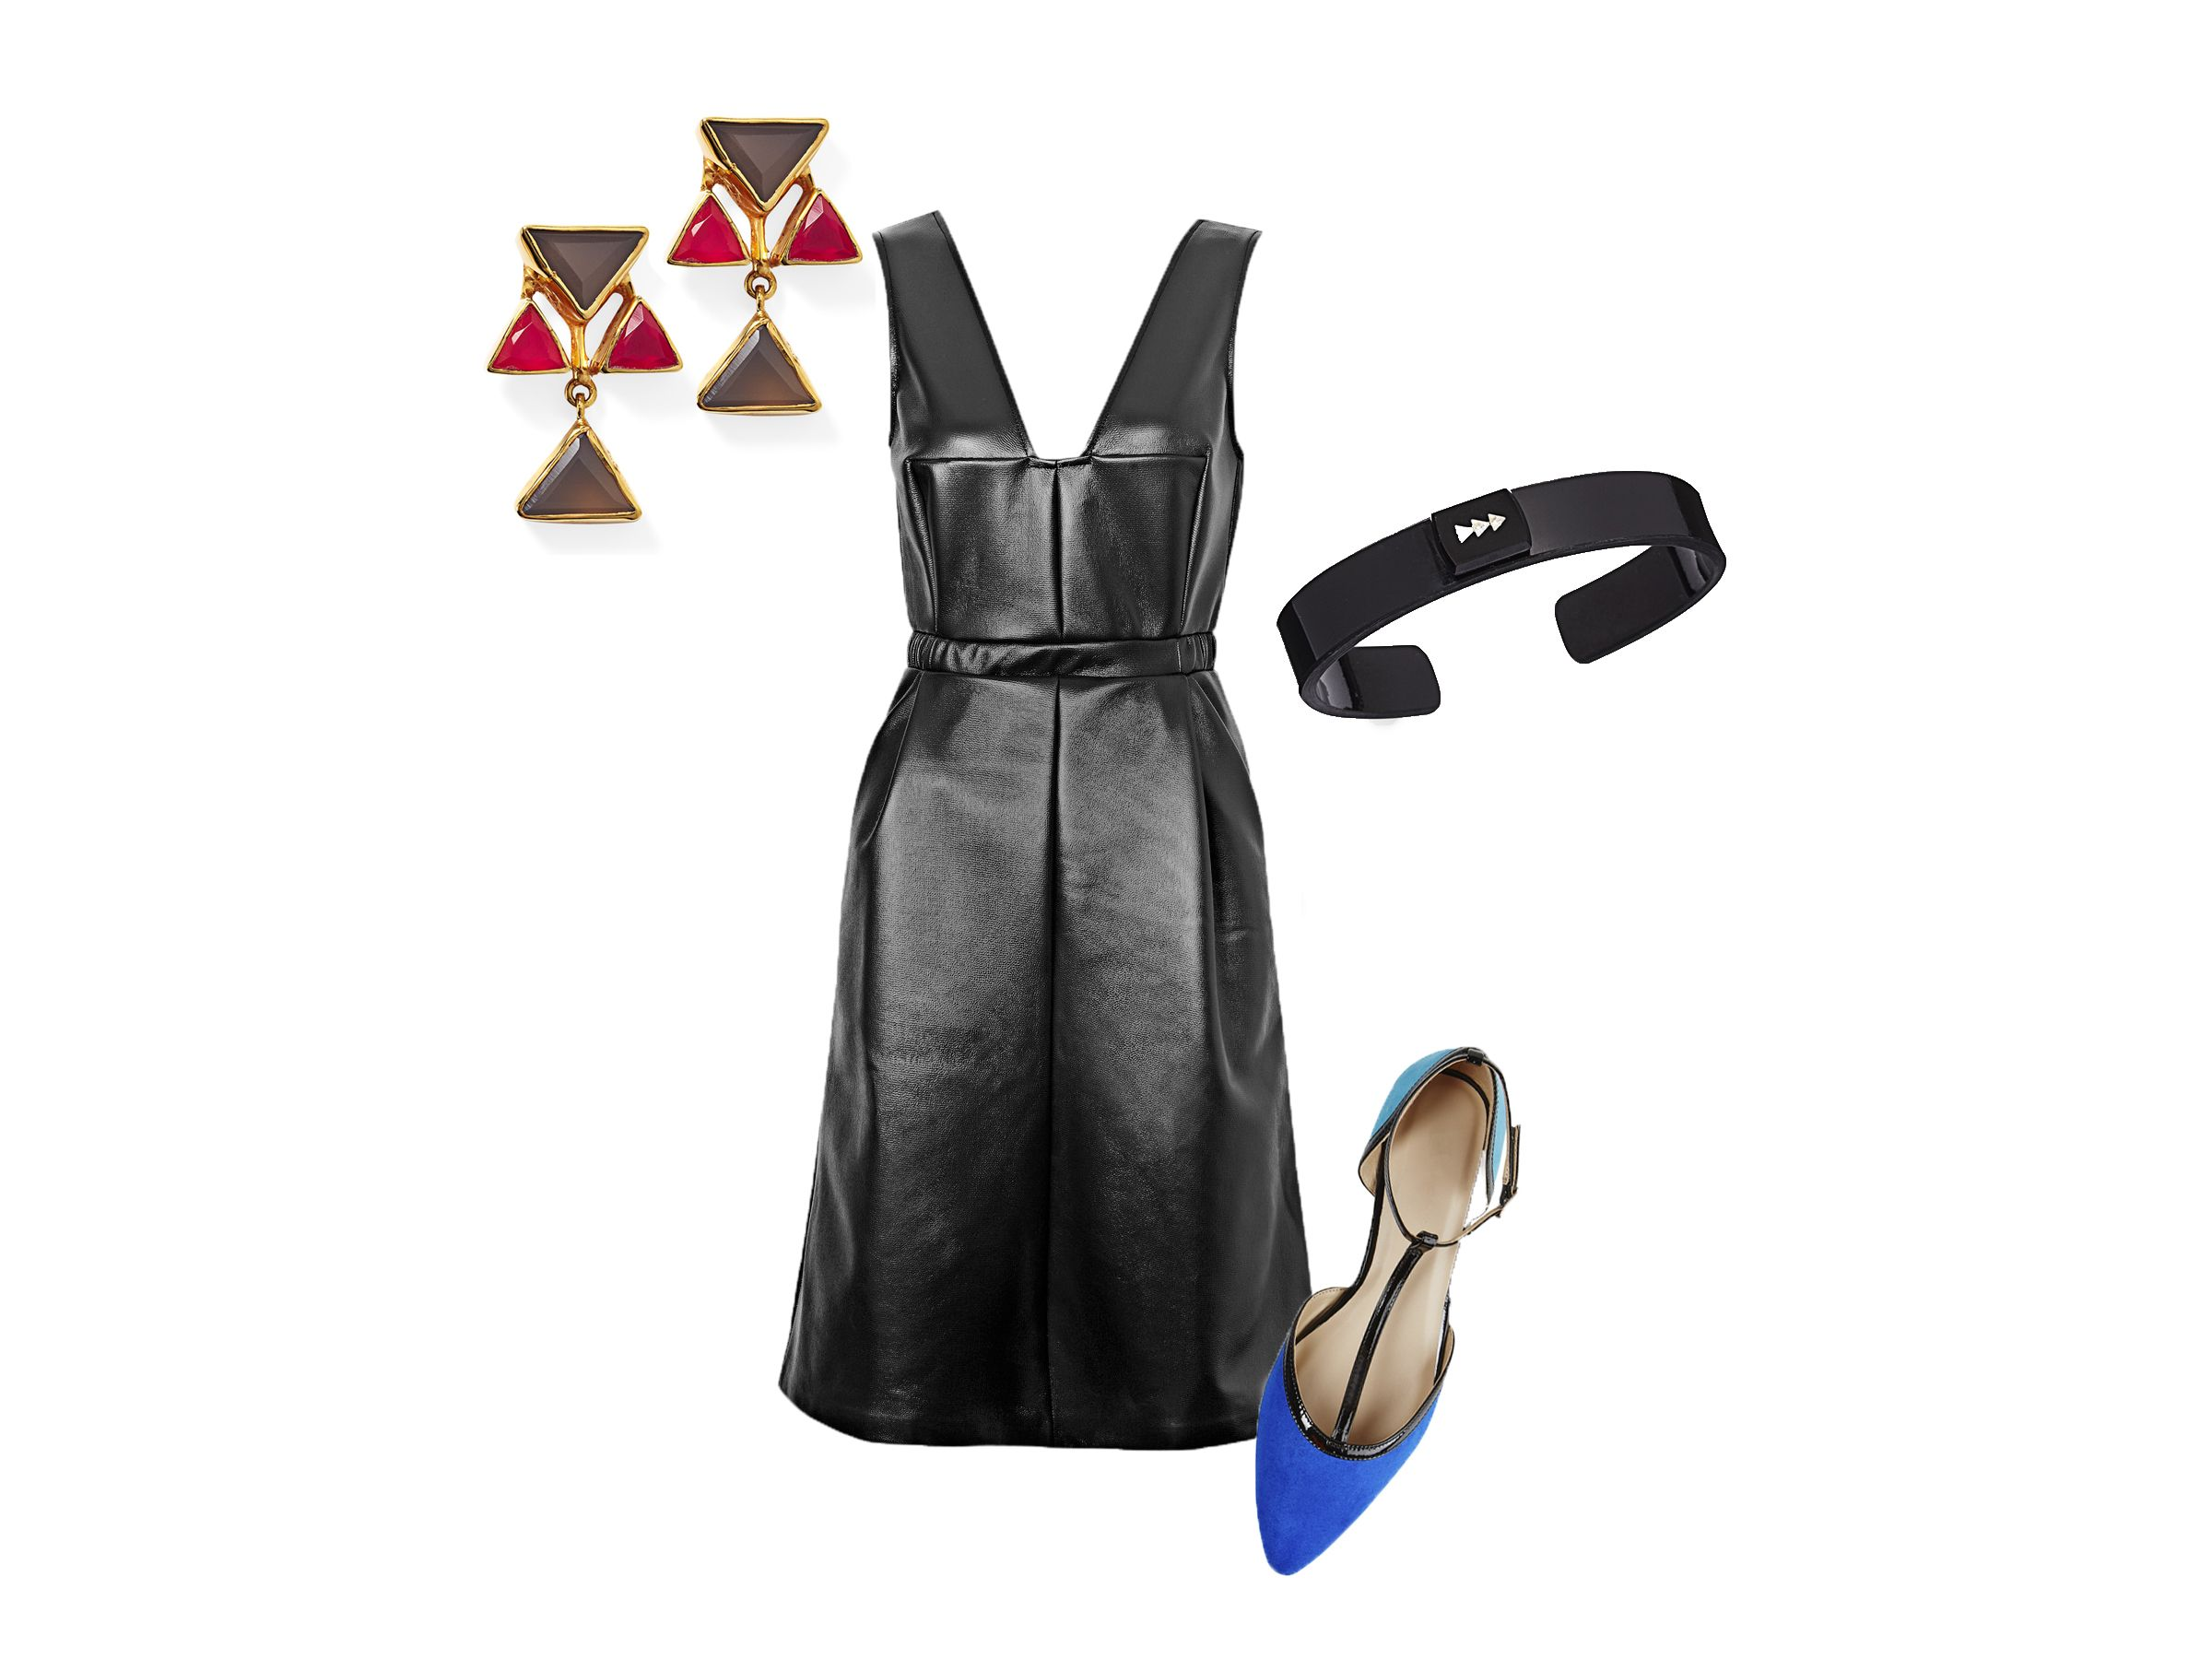 The beauty of this dress: The demure A-line shape balances the sexiness of the faux-leather material and a plunging neckline. With flats, this outfit is gonna let you dominate on the dance floor.